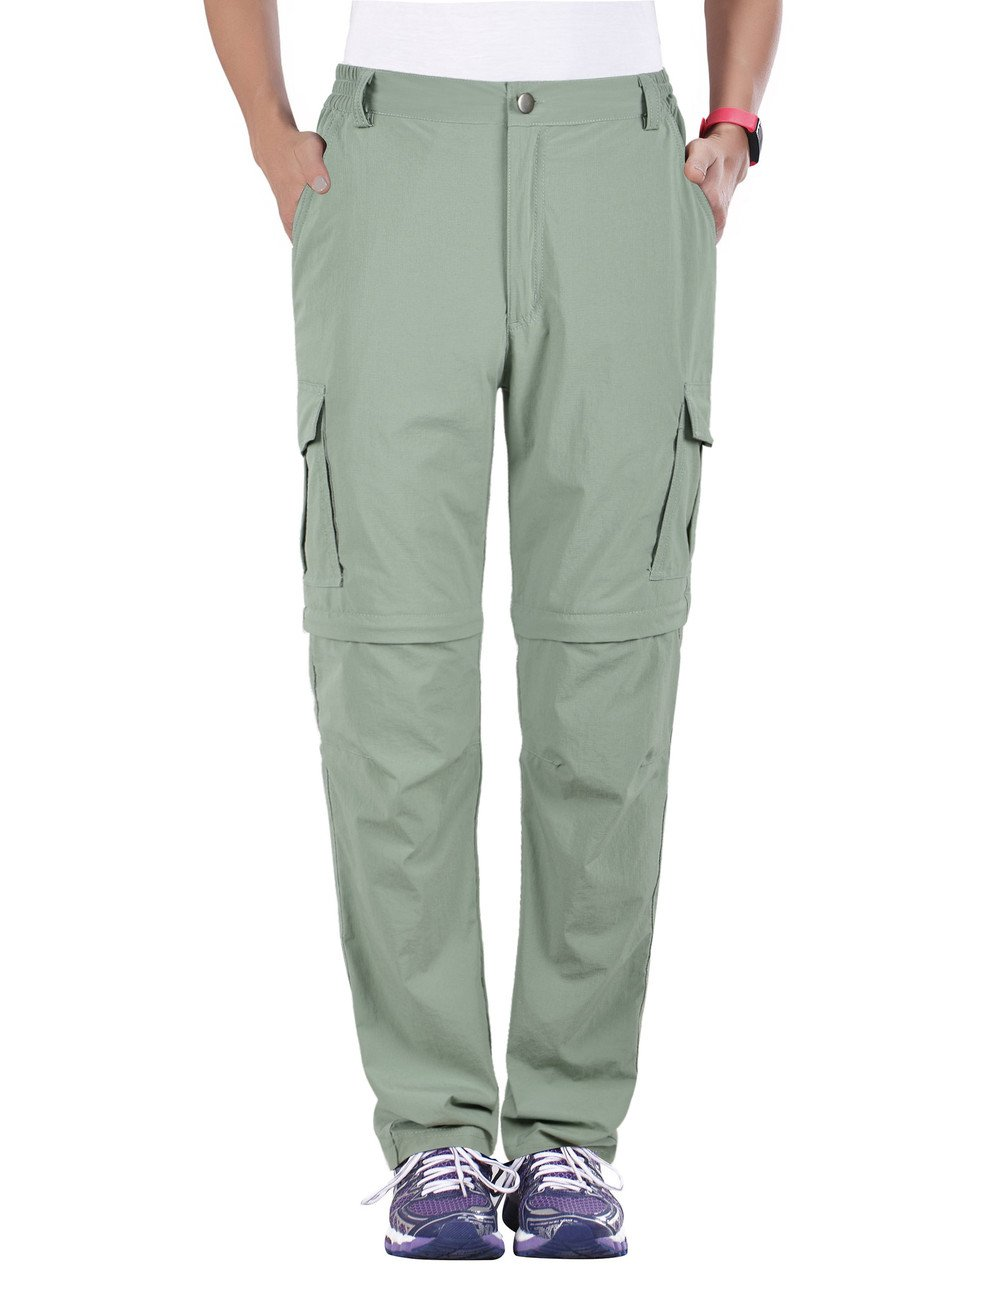 Unitop Women's Quick Dry Convertible Pants Light